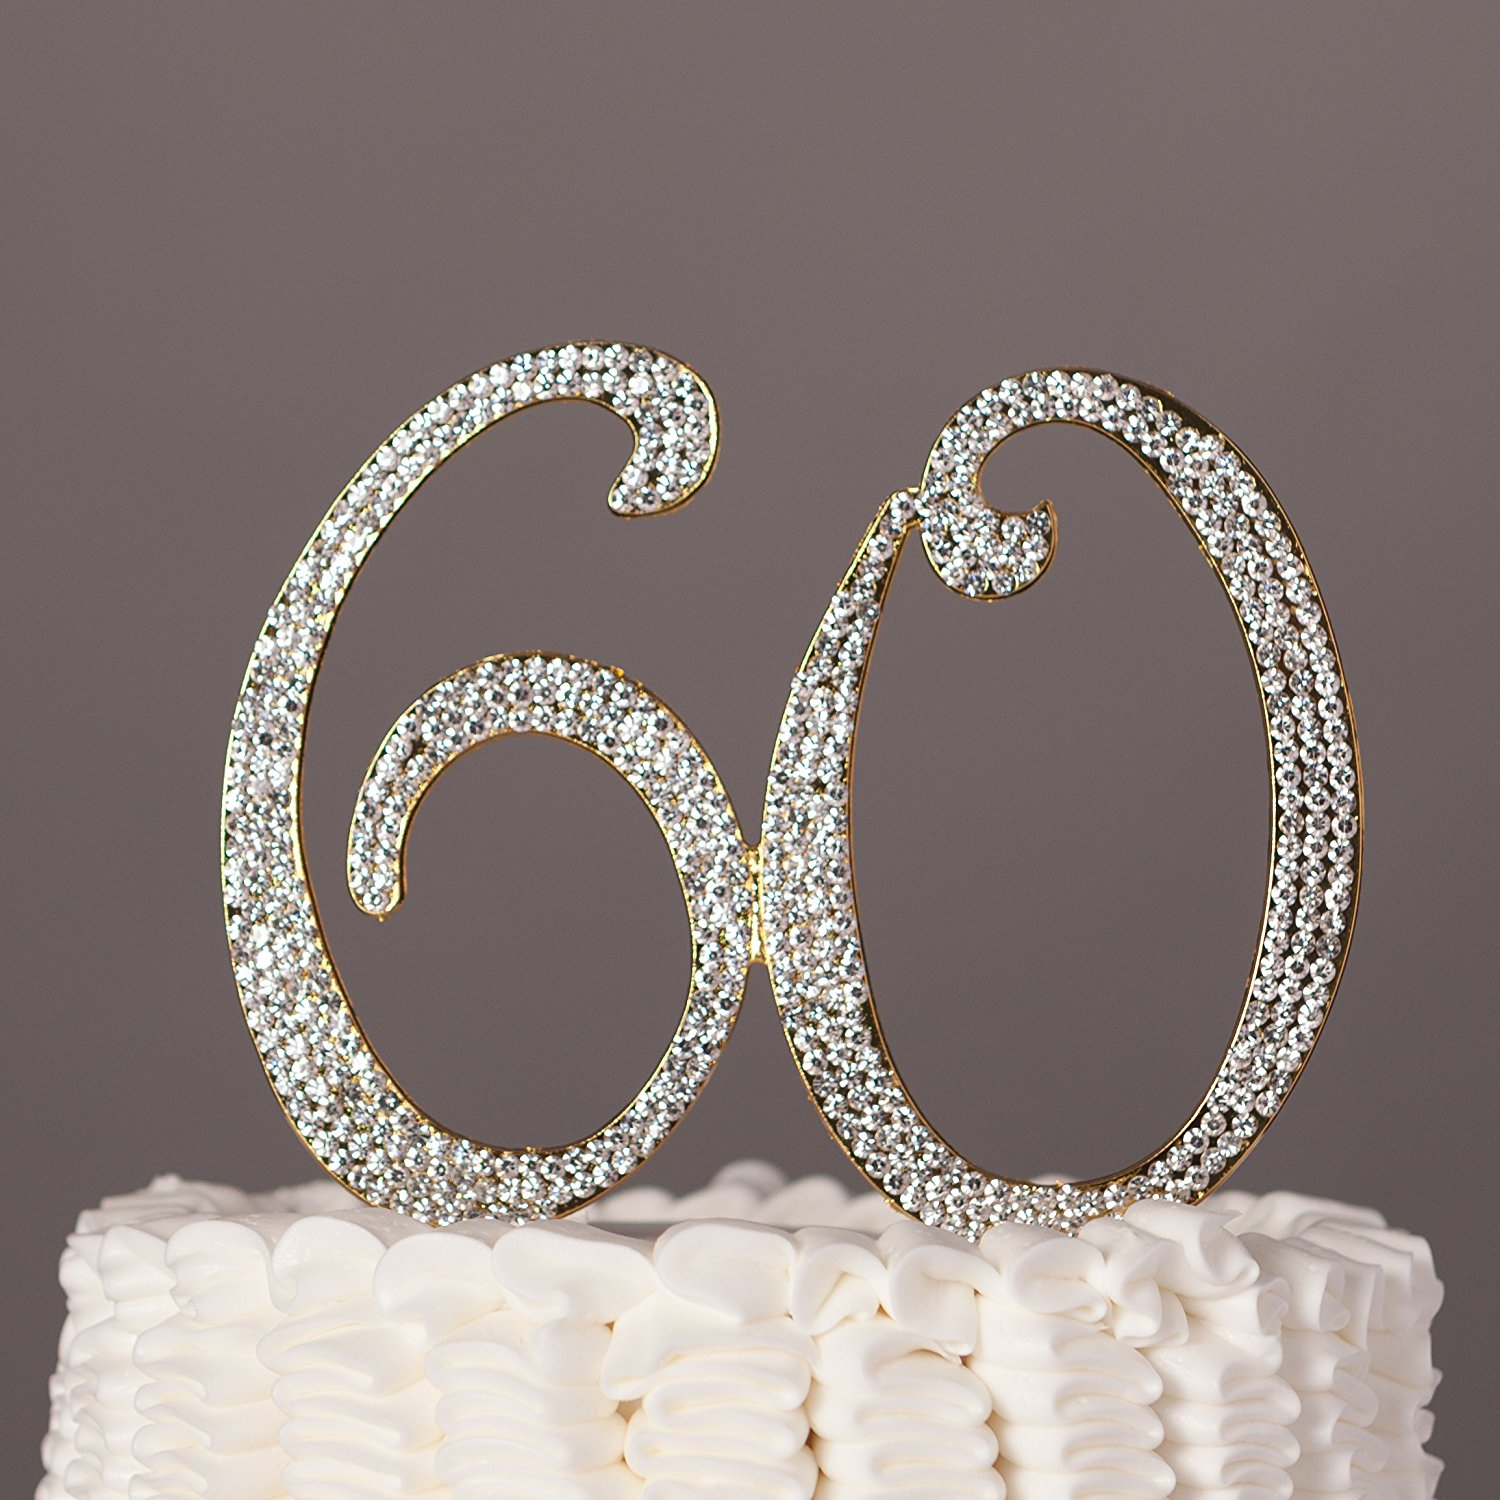 60Th Birthday Cake Toppers 60 Cake Topper For 60th Birthday Or Anniversary Gold Party Supplies